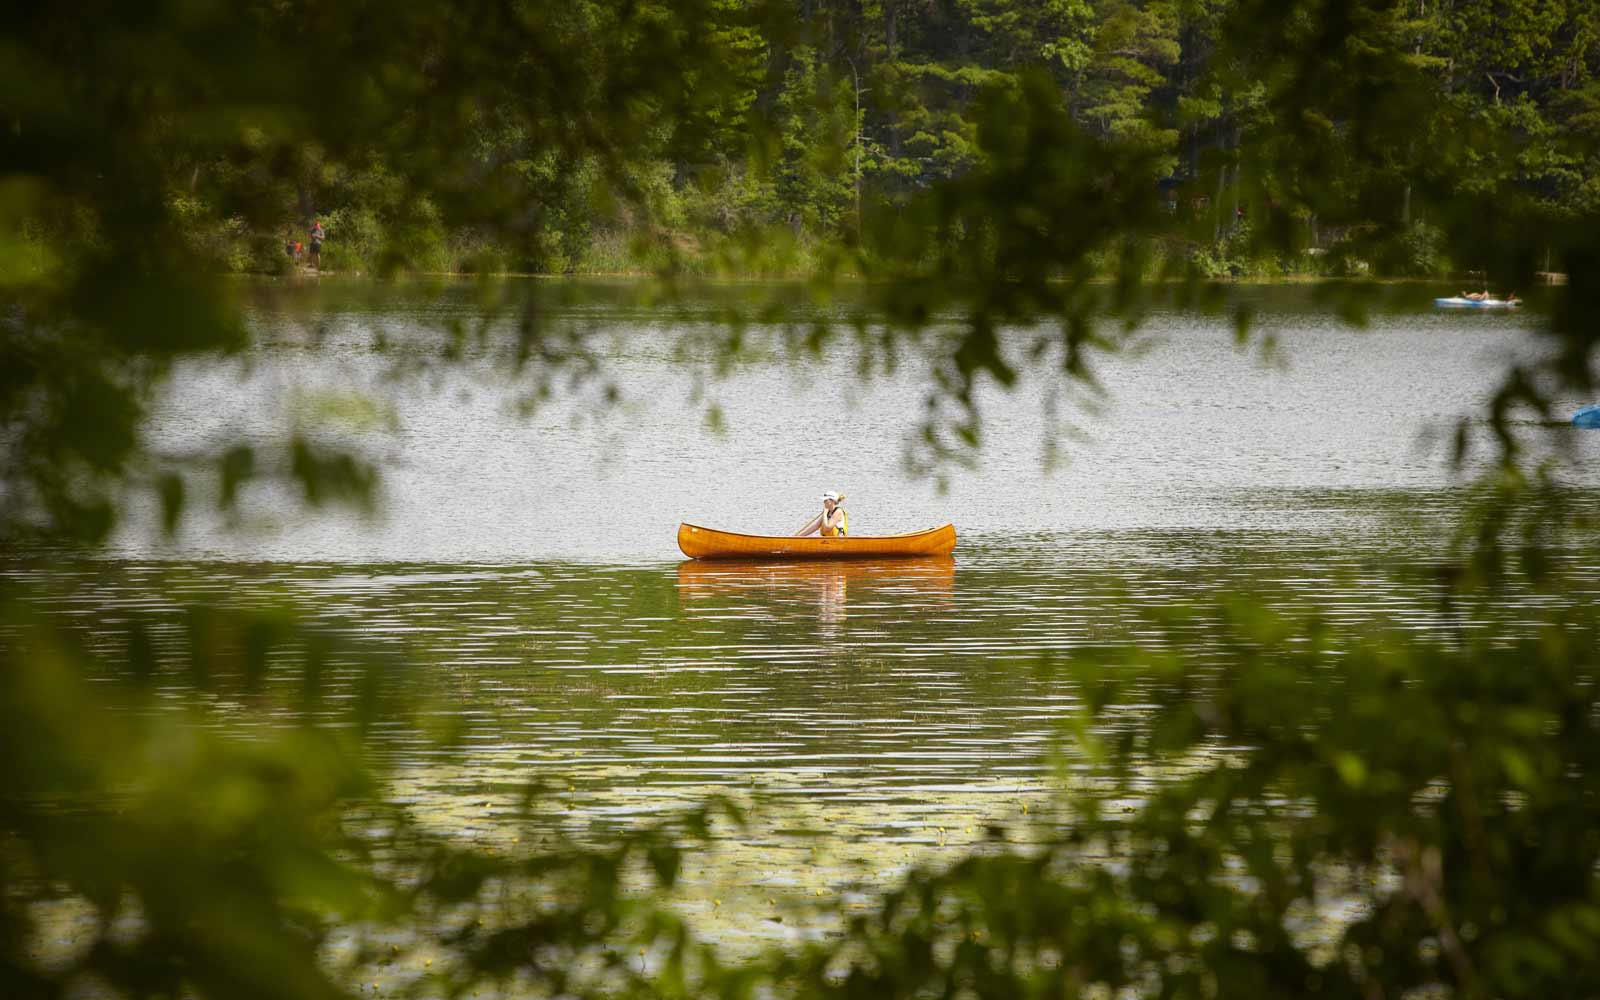 Person in Canoe on Grand River Surrounded by Trees in Paris, ON